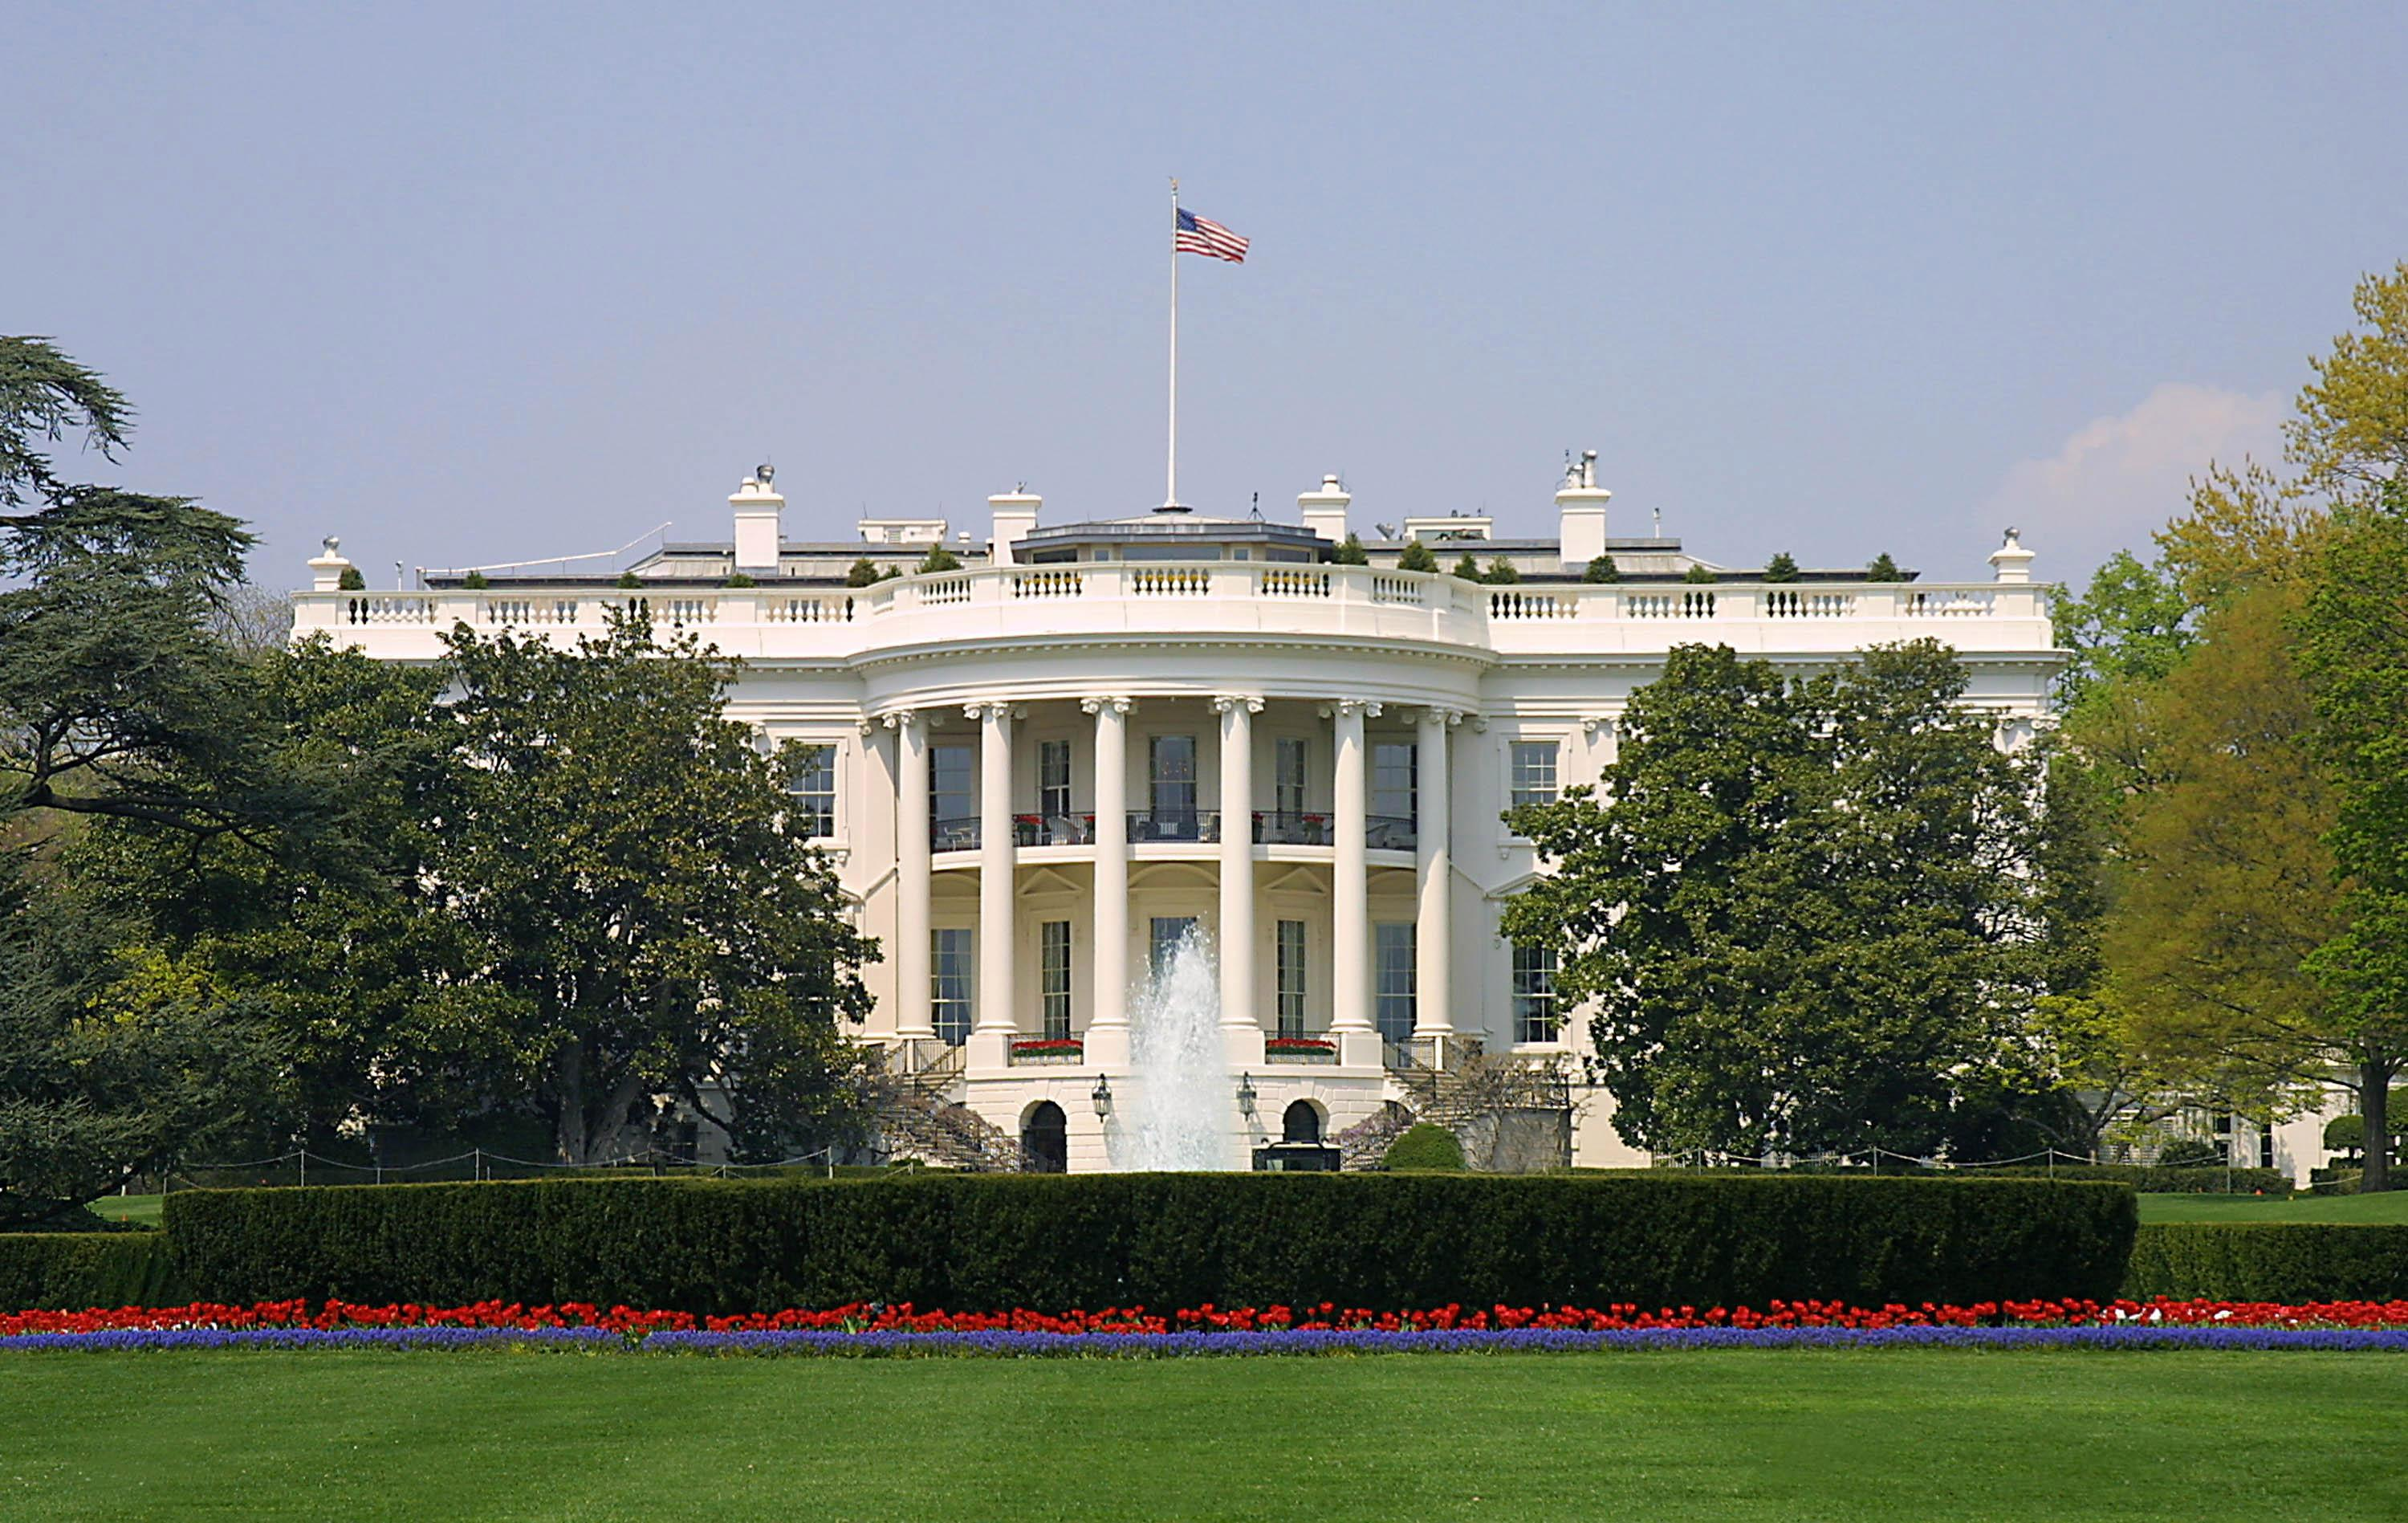 White House on alert as neighbouring government building is evacuated following fears over 'suspicious vehicle'